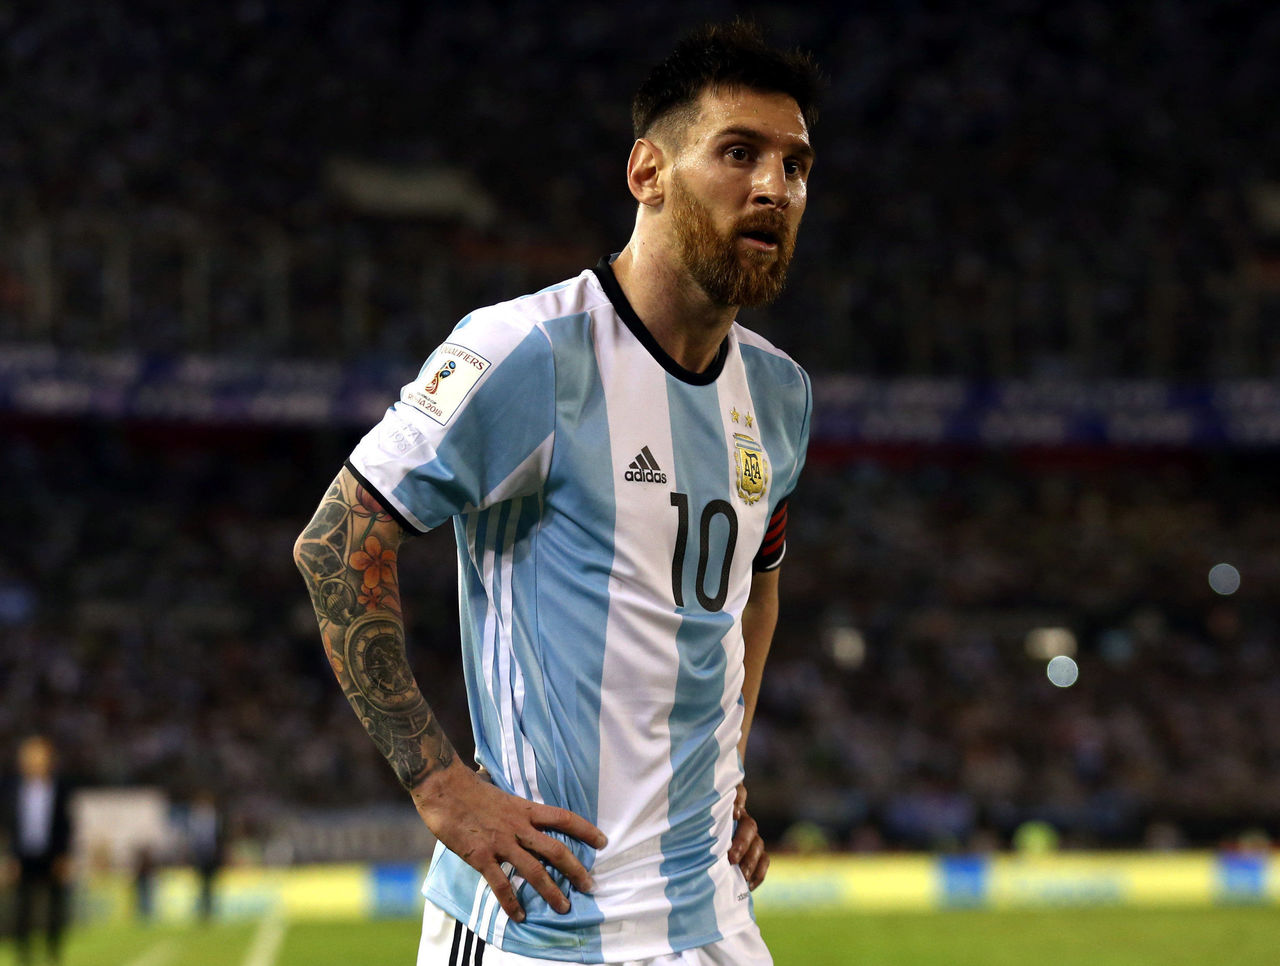 Cropped 2017 03 24t080025z 1570923580 rc17828ea720 rtrmadp 3 soccer worldcup arg chl